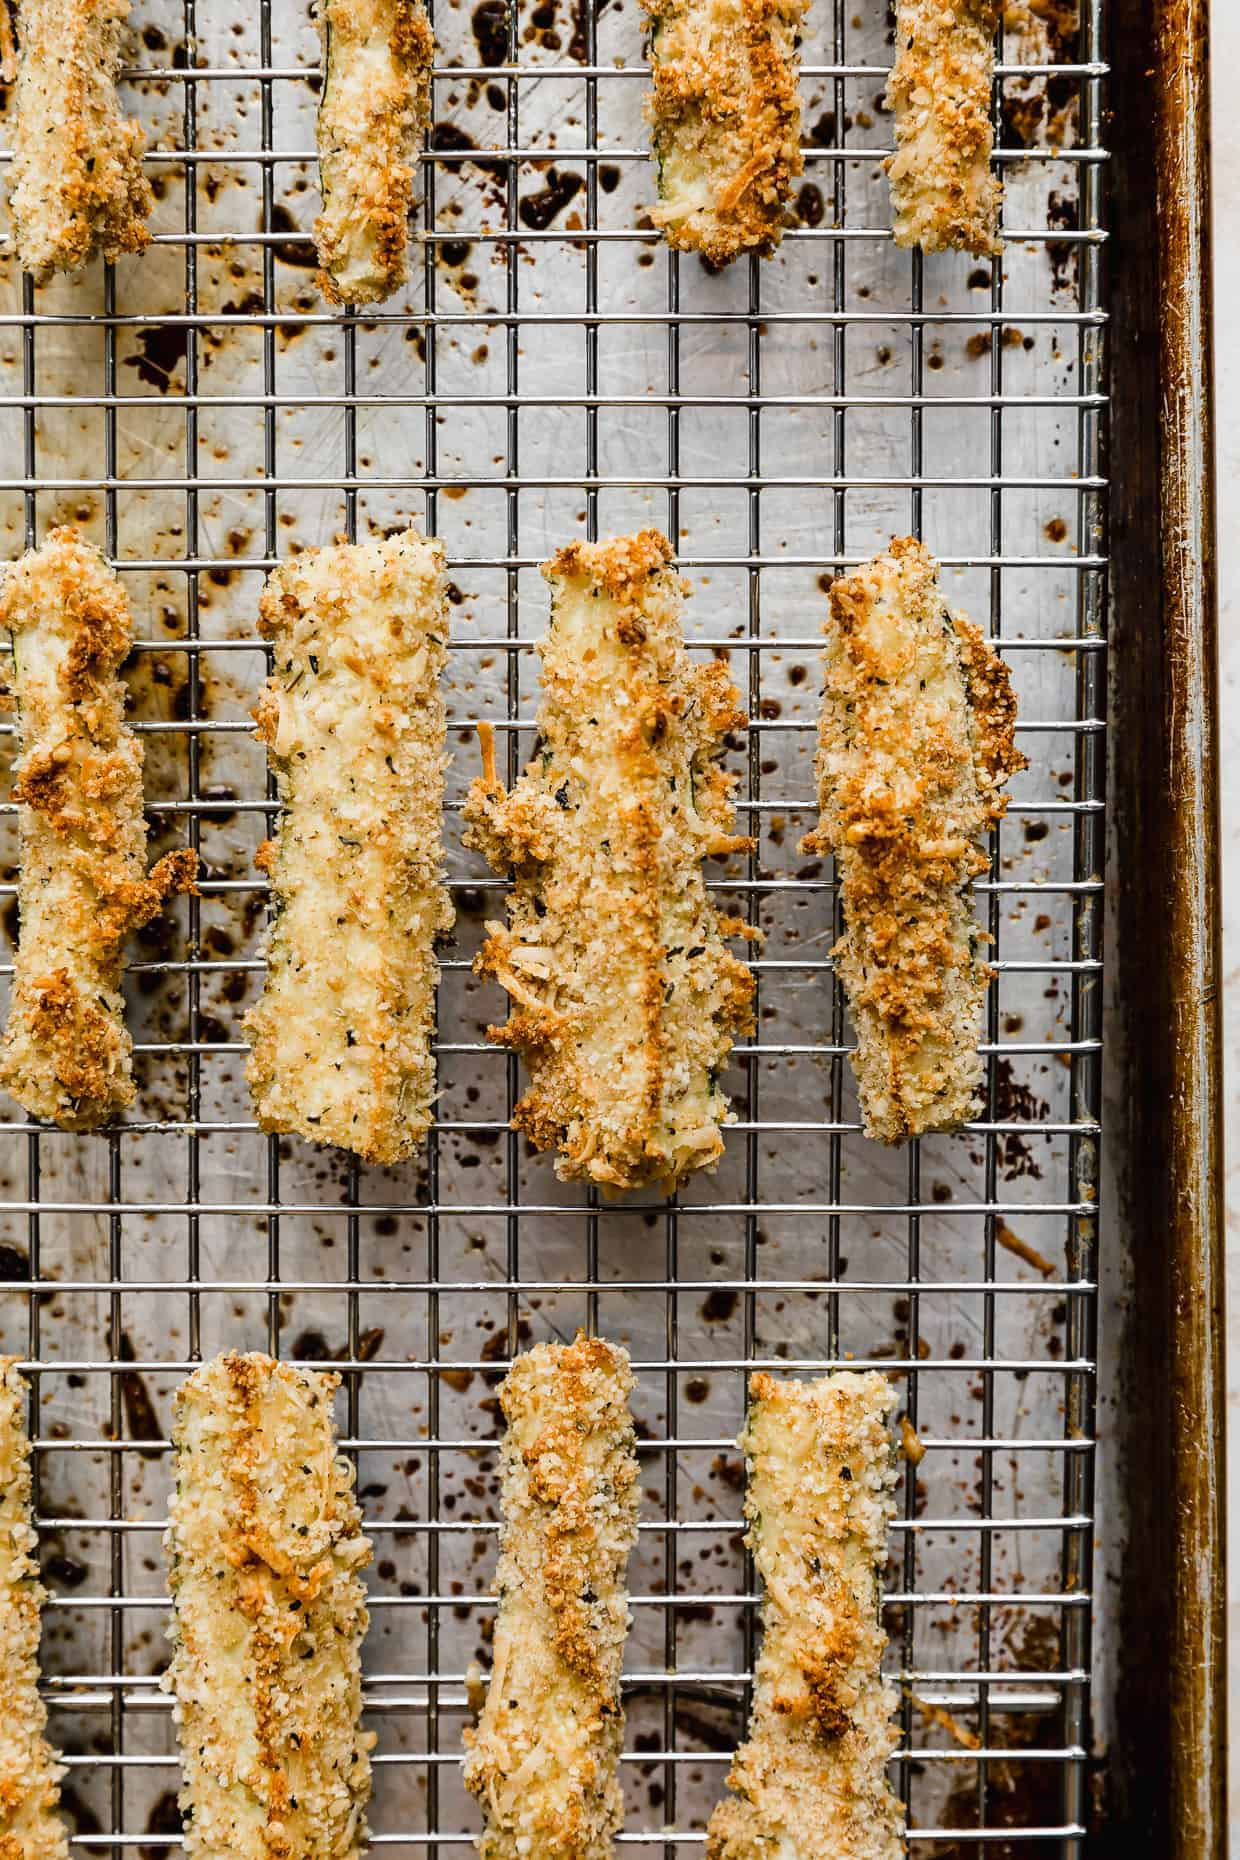 Close up photo of lightly browned crispy baked zucchini fries on a wire rack.